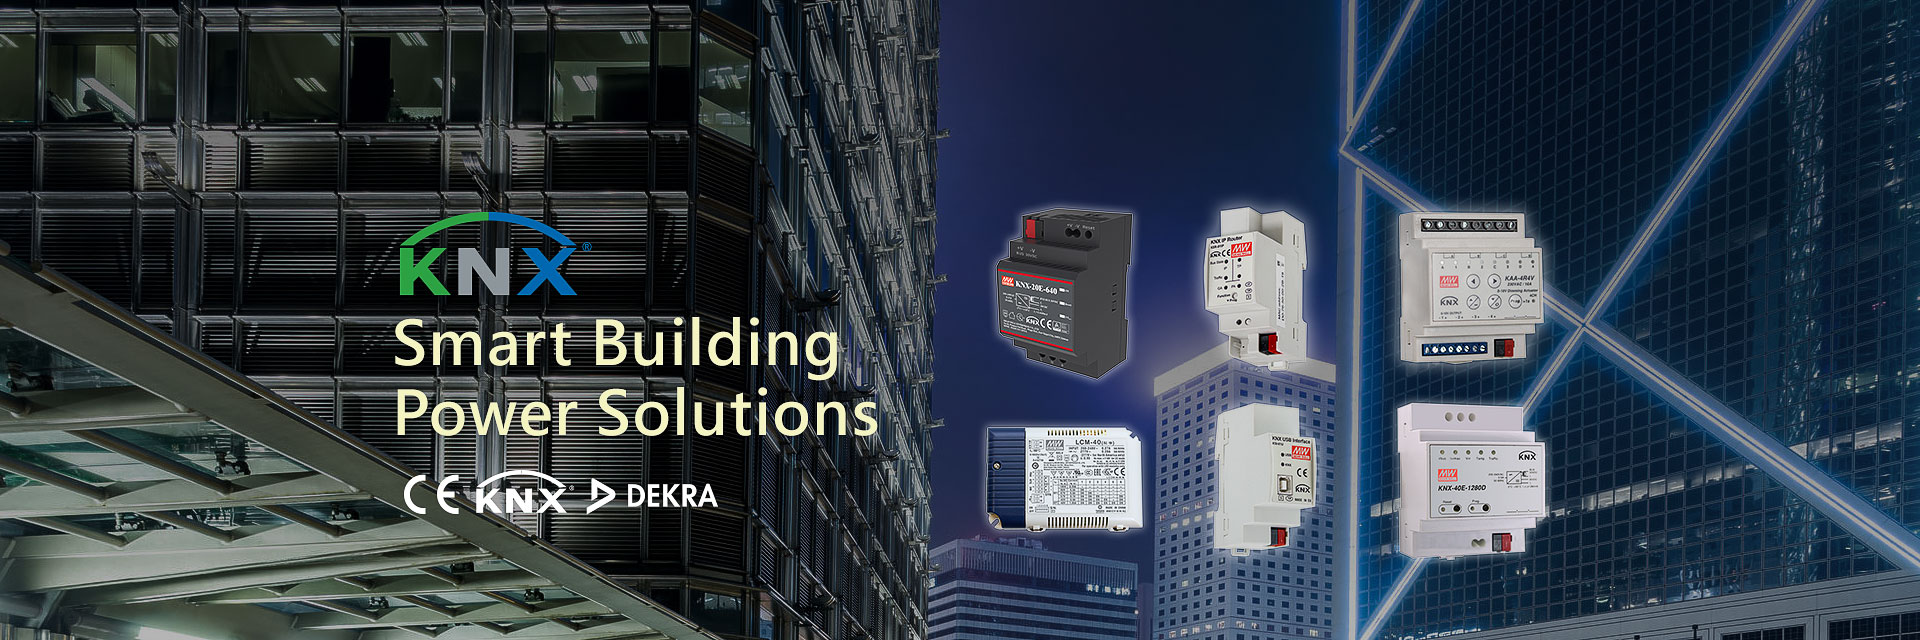 KNX Smart Building